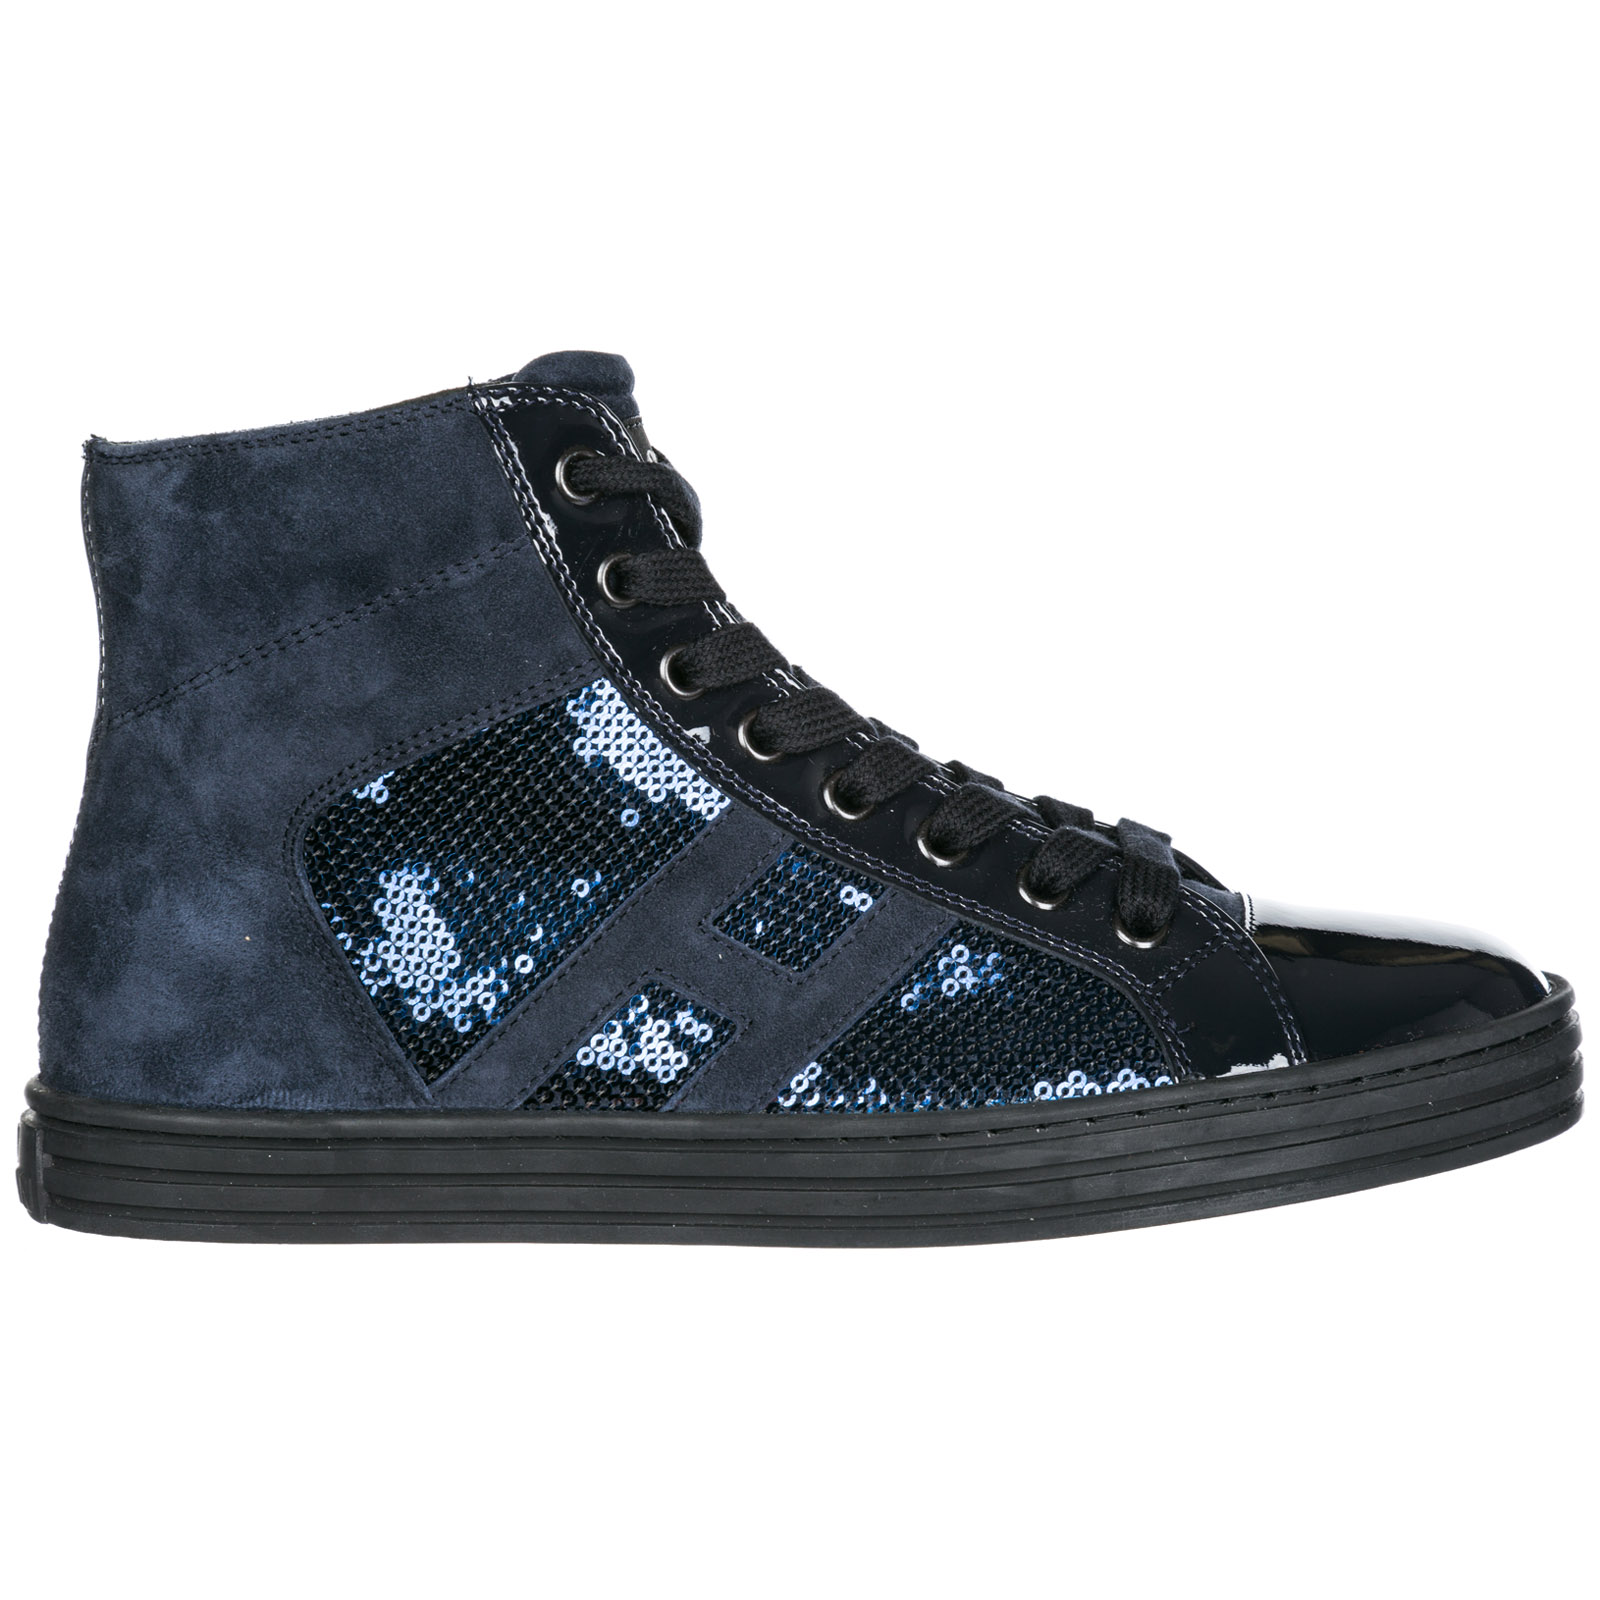 599e5d847edc Hogan Rebel Women S Shoes High Top Leather Trainers Sneakers R141 In Blue